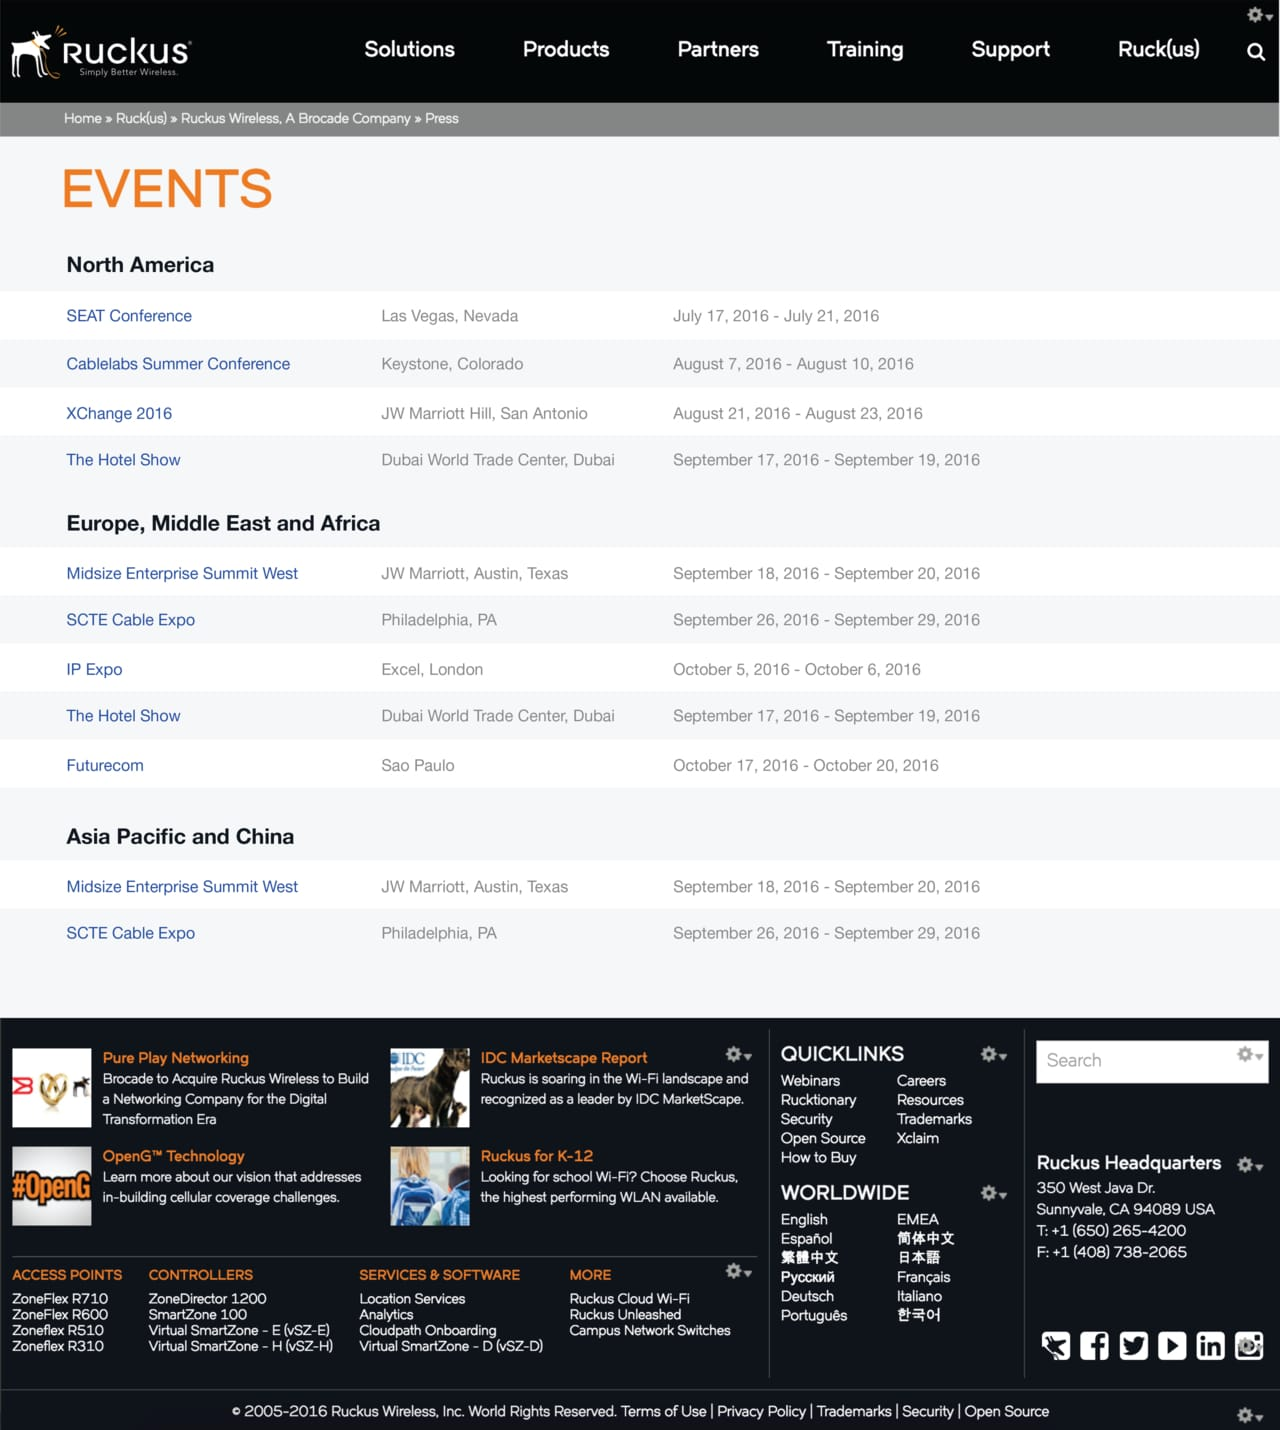 The Events page. There is further separation using region headings.